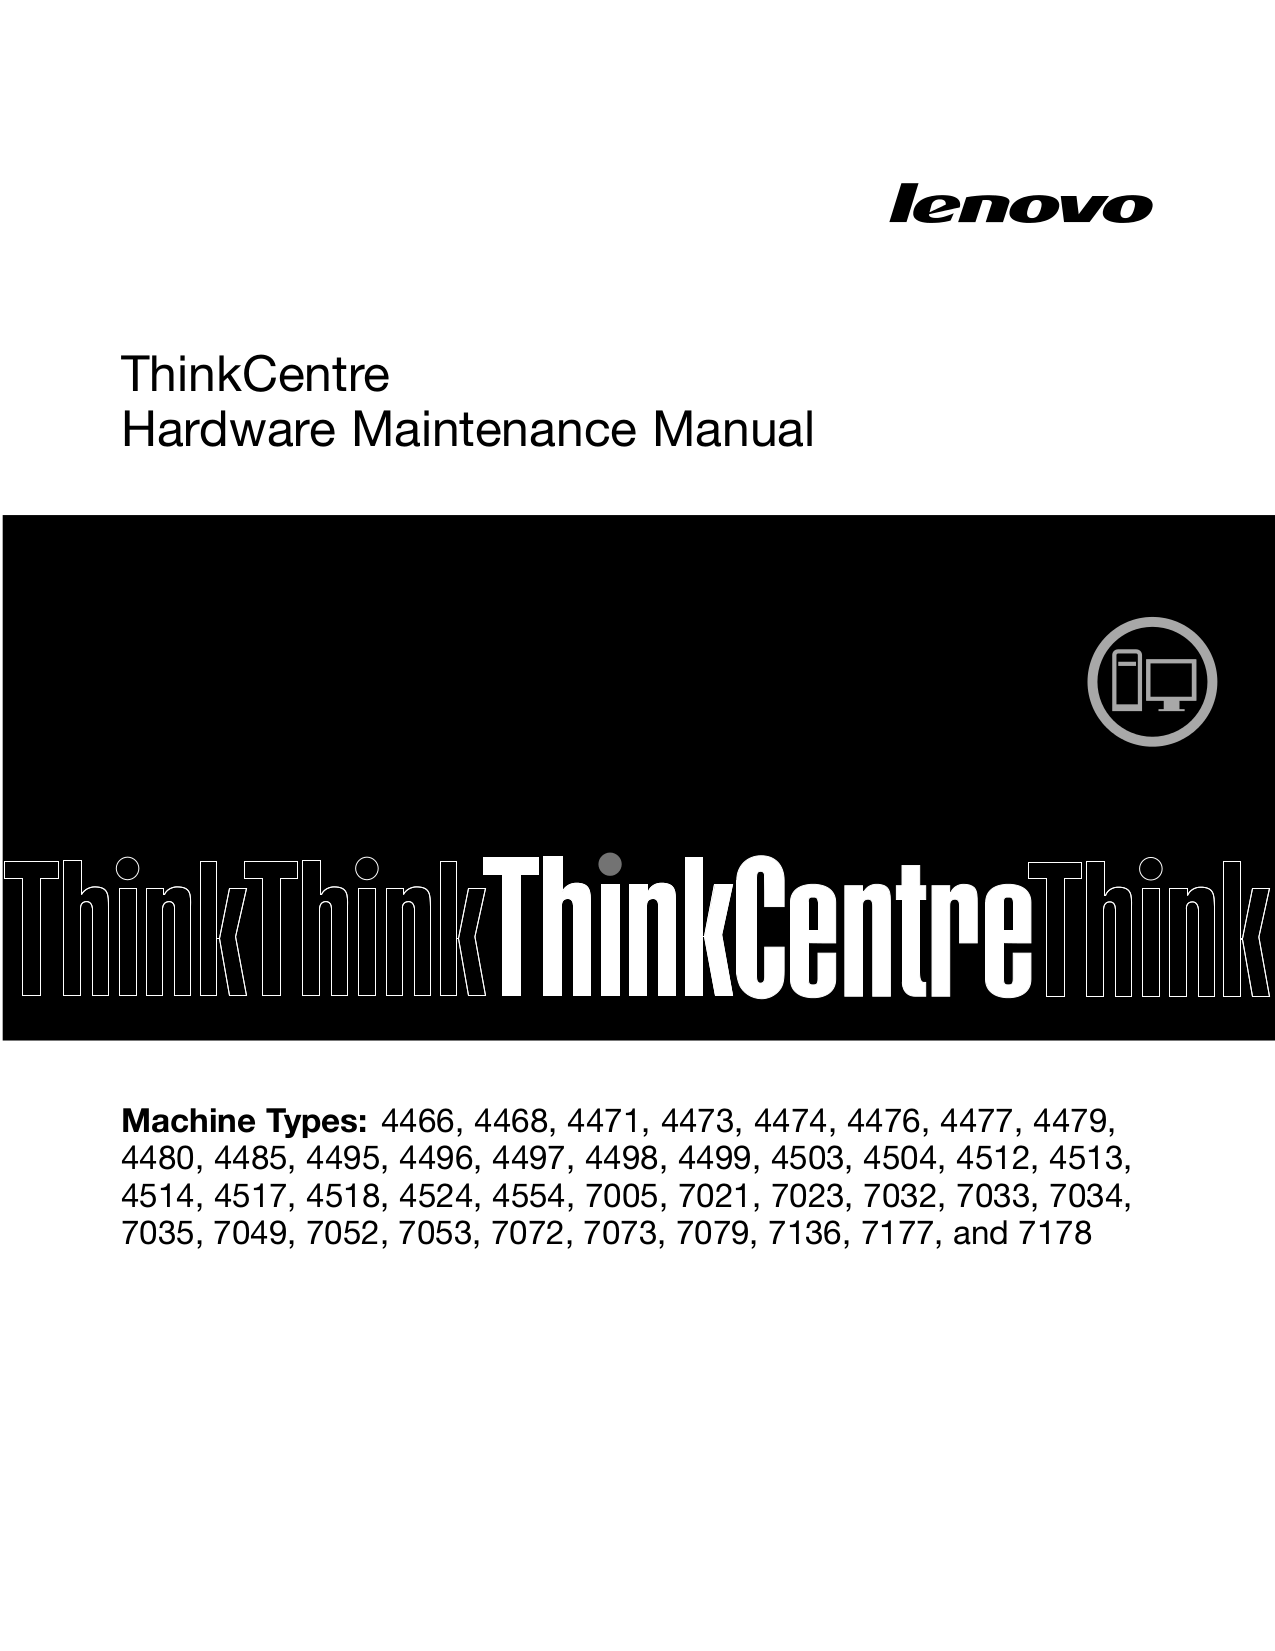 pdf for Lenovo Desktop ThinkCentre M91p 7034 manual